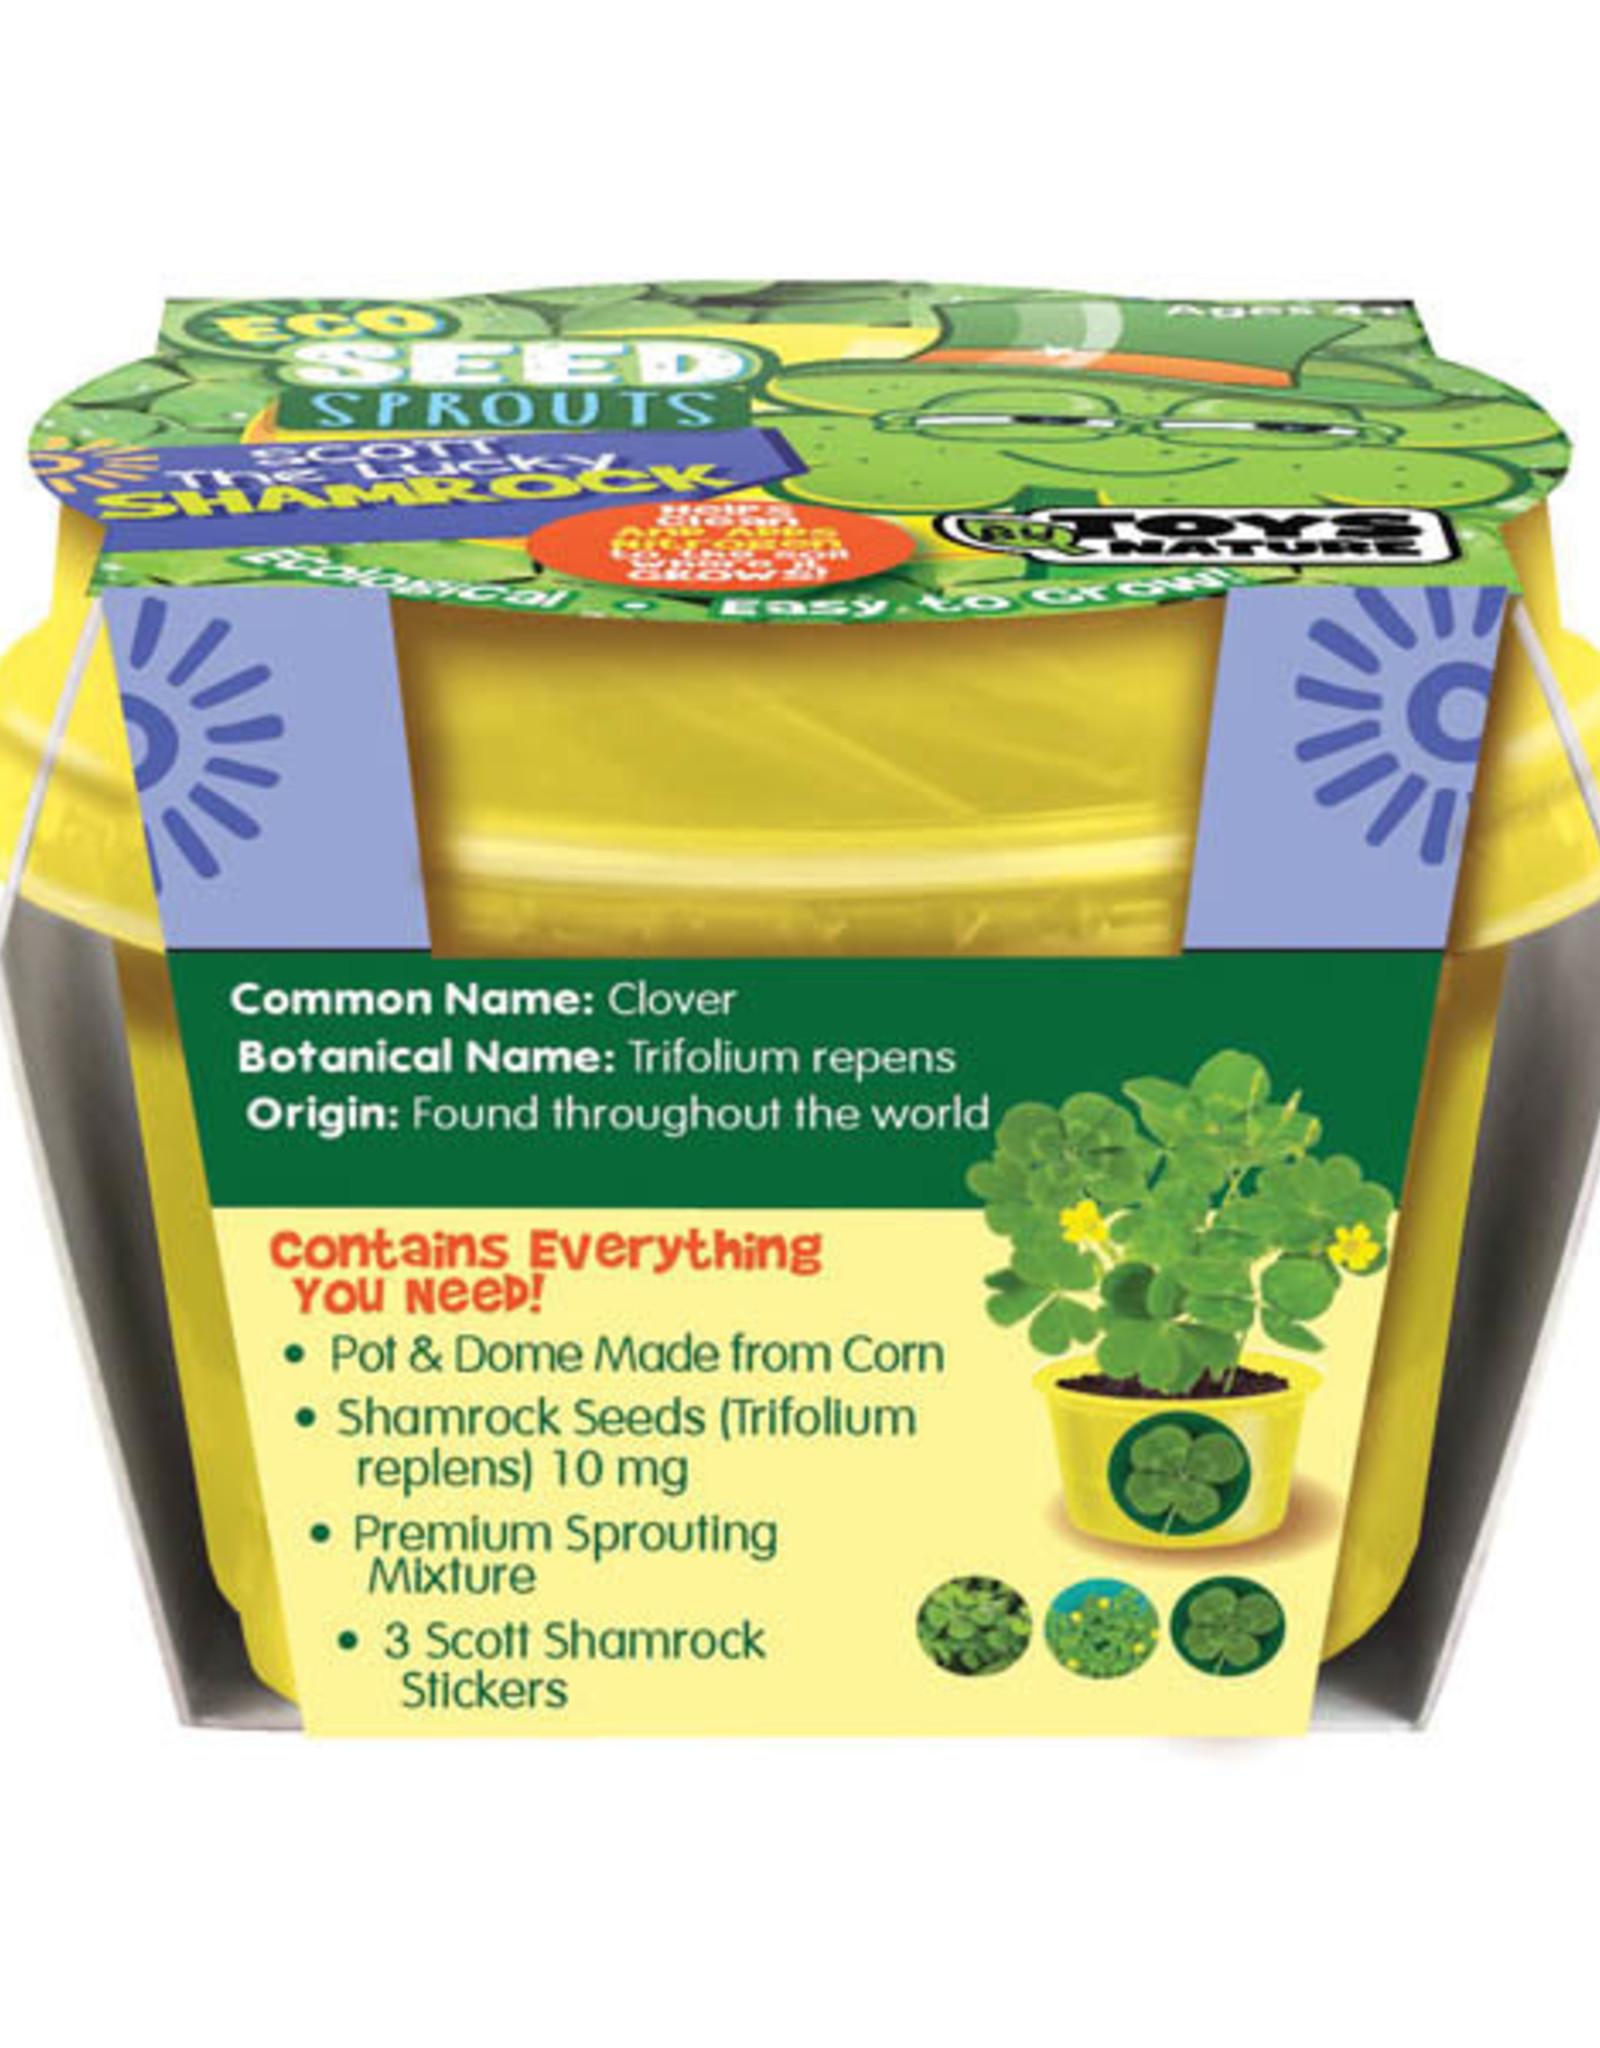 Eco Seed Sprouts-Scott the Lucky Shamrock